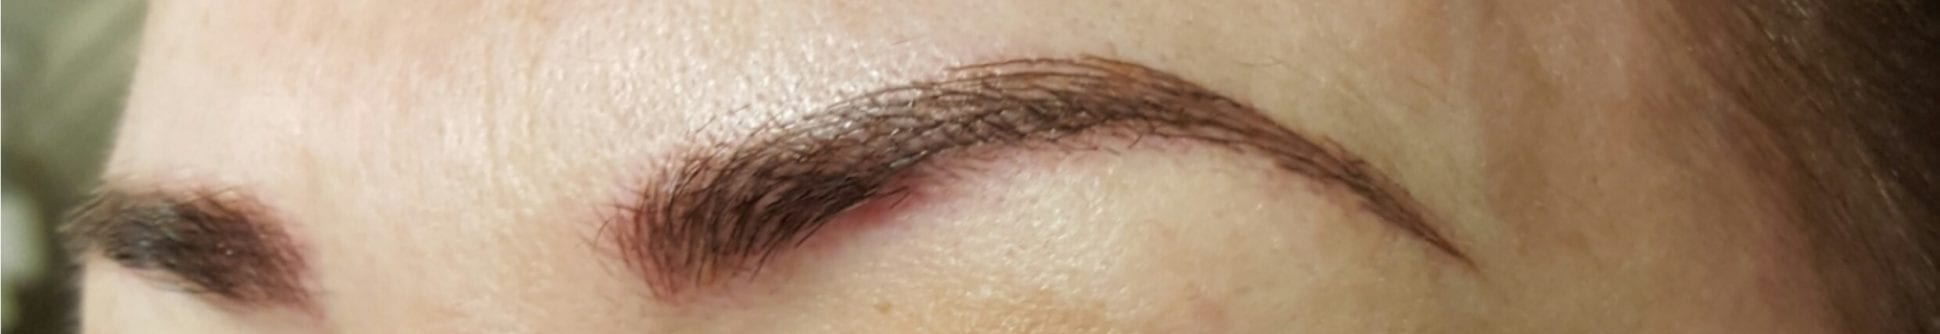 Semi-Permanent Microblading Eyebrows at Clinetix - After